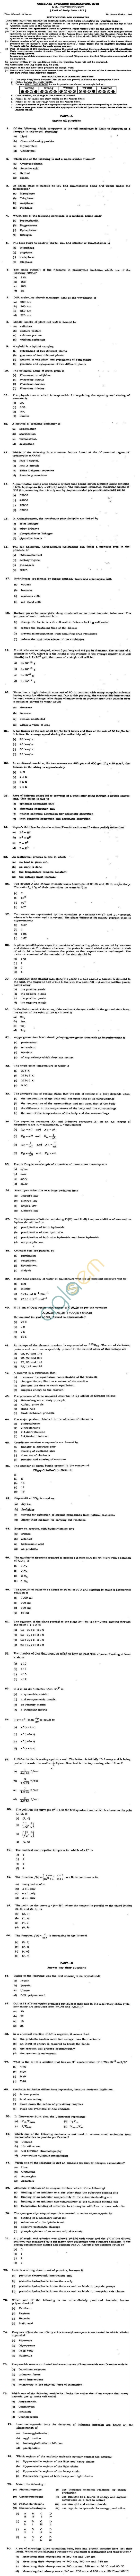 JNU CEEB Question Papers 2012 M.Sc. - Biotechnology